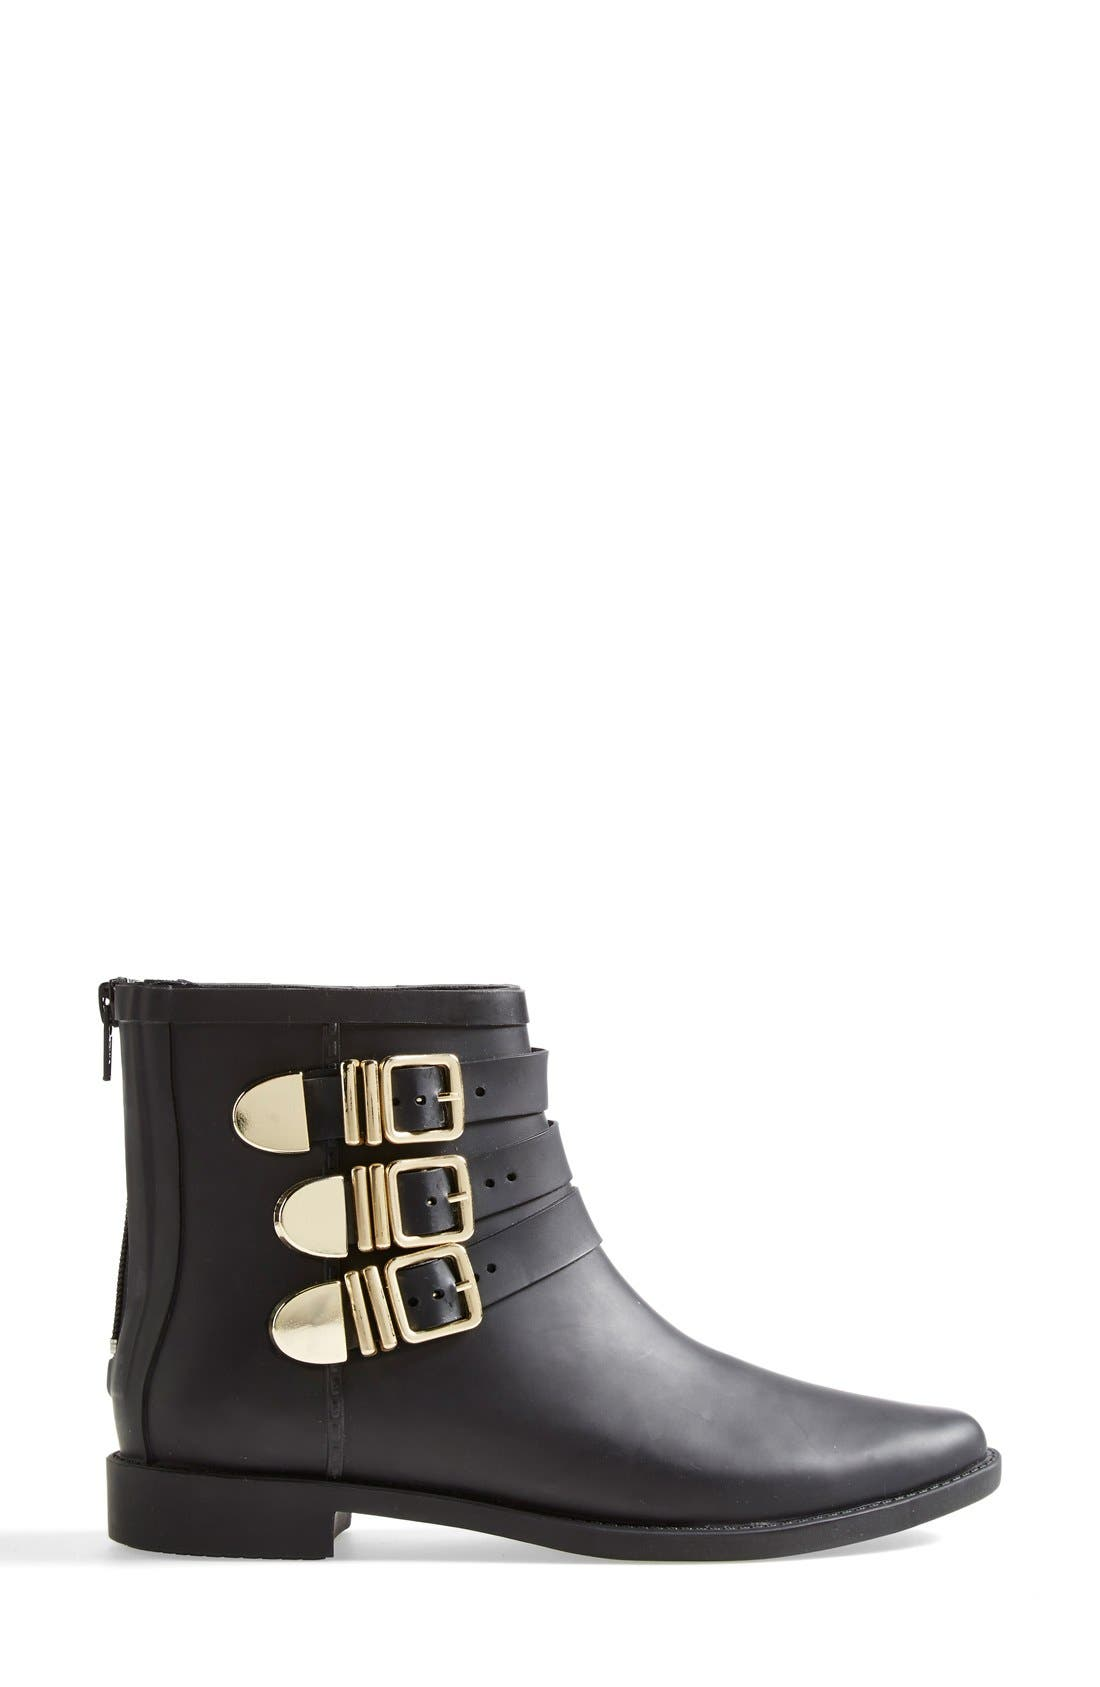 'Fenton' Rain Boot,                             Alternate thumbnail 4, color,                             Black/ Gold